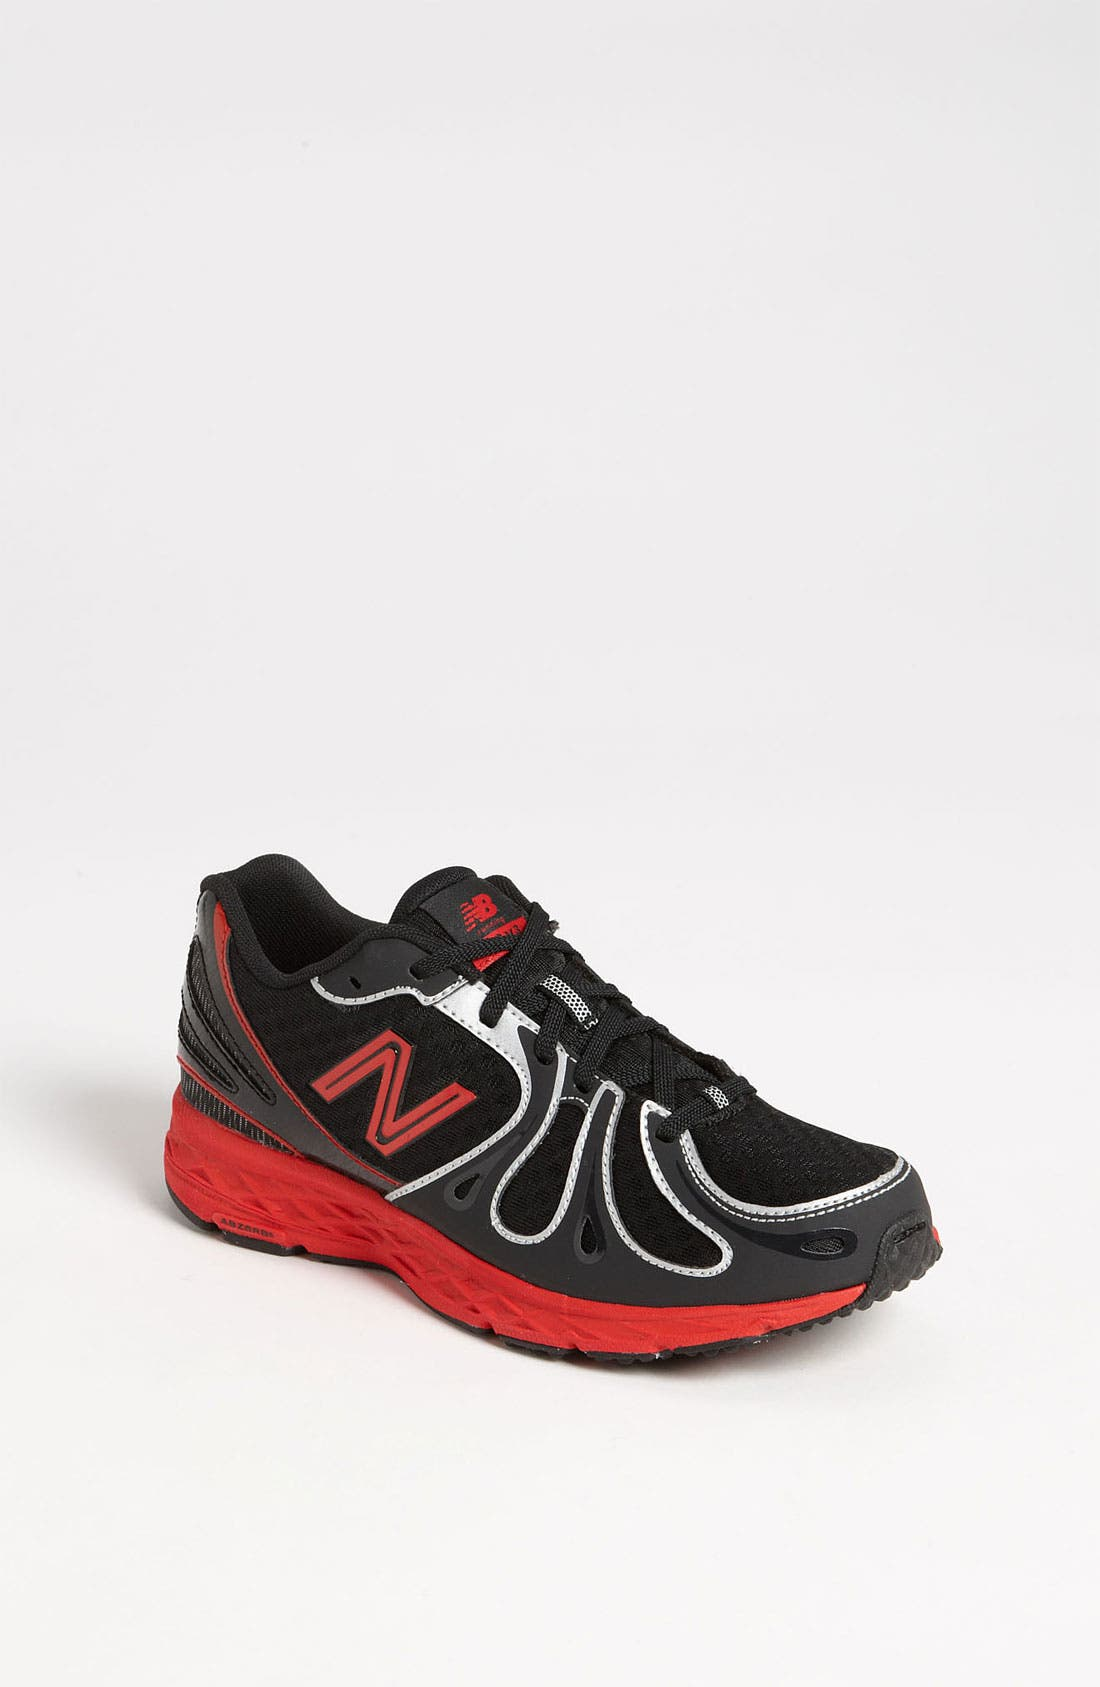 Main Image - New Balance '890' Sneaker (Toddler, Little Kid & Big Kid)